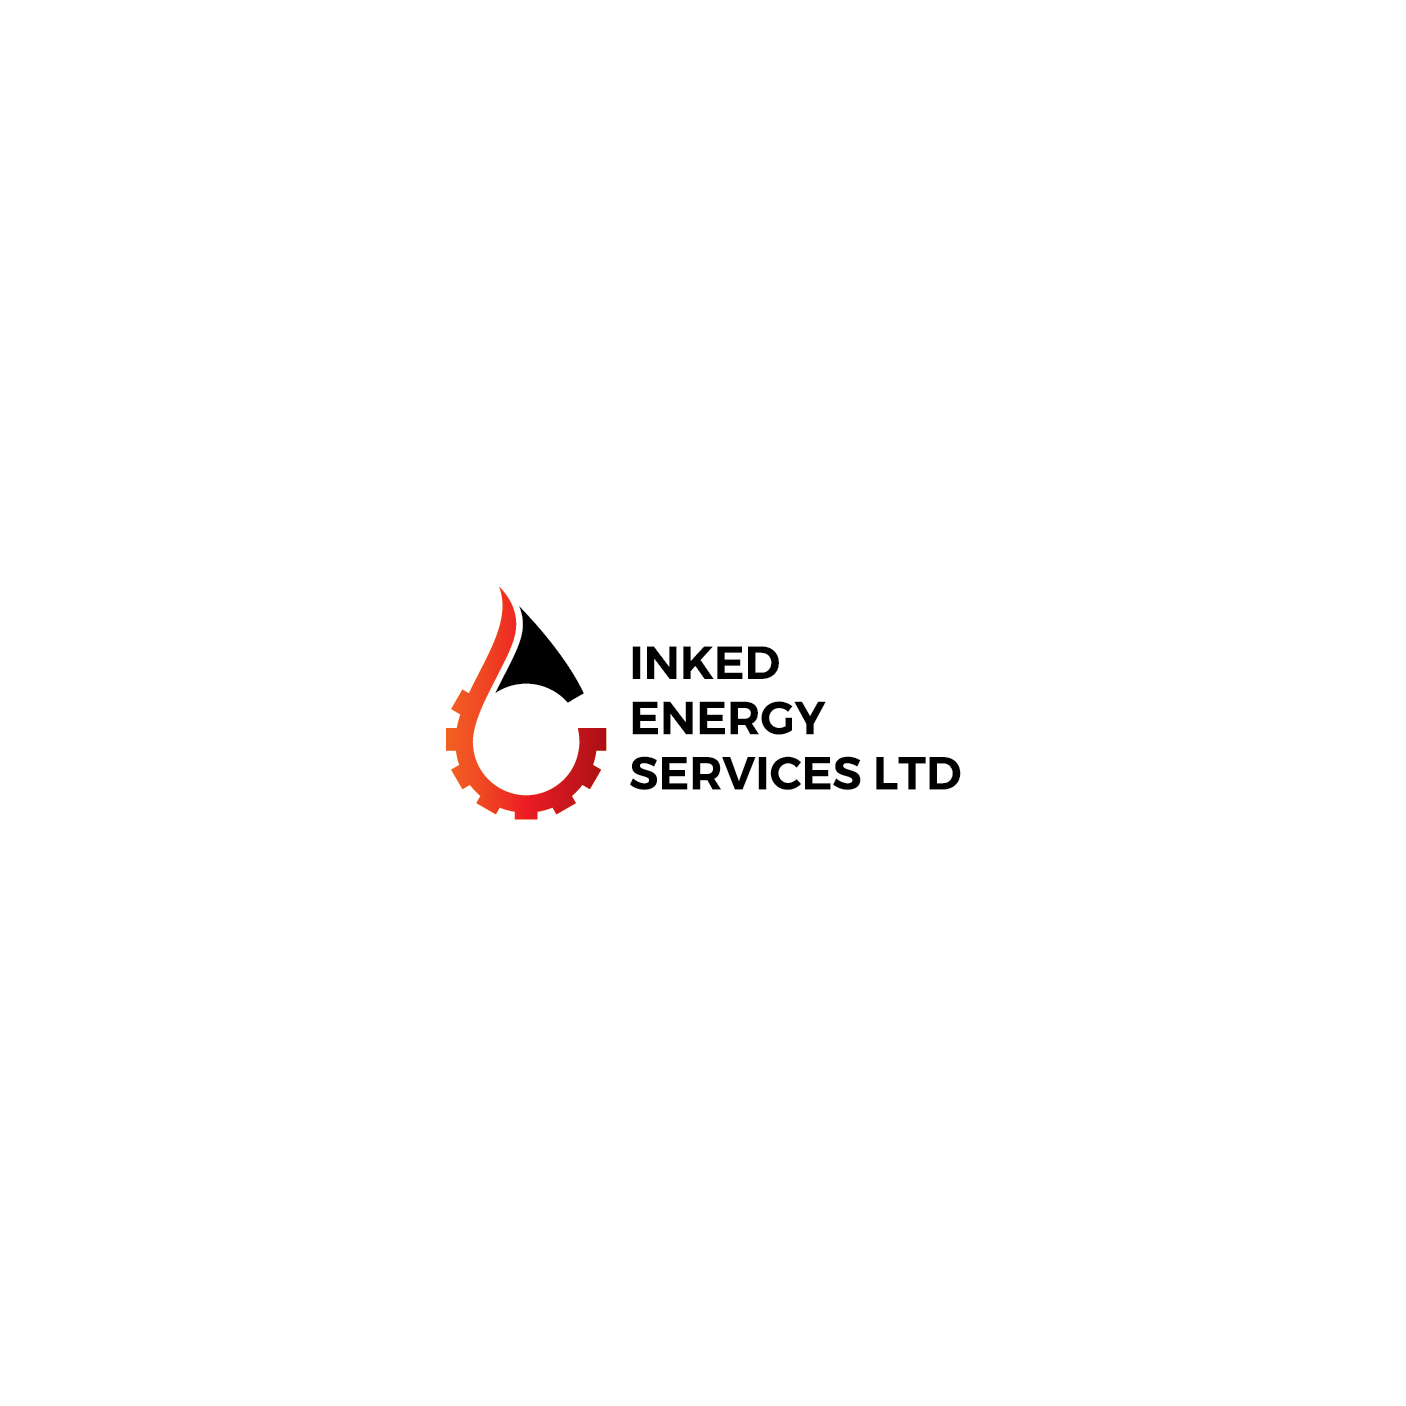 Logo Design by 354studio - Entry No. 155 in the Logo Design Contest Creative Logo Design for INKED ENERGY SERVICES LTD.